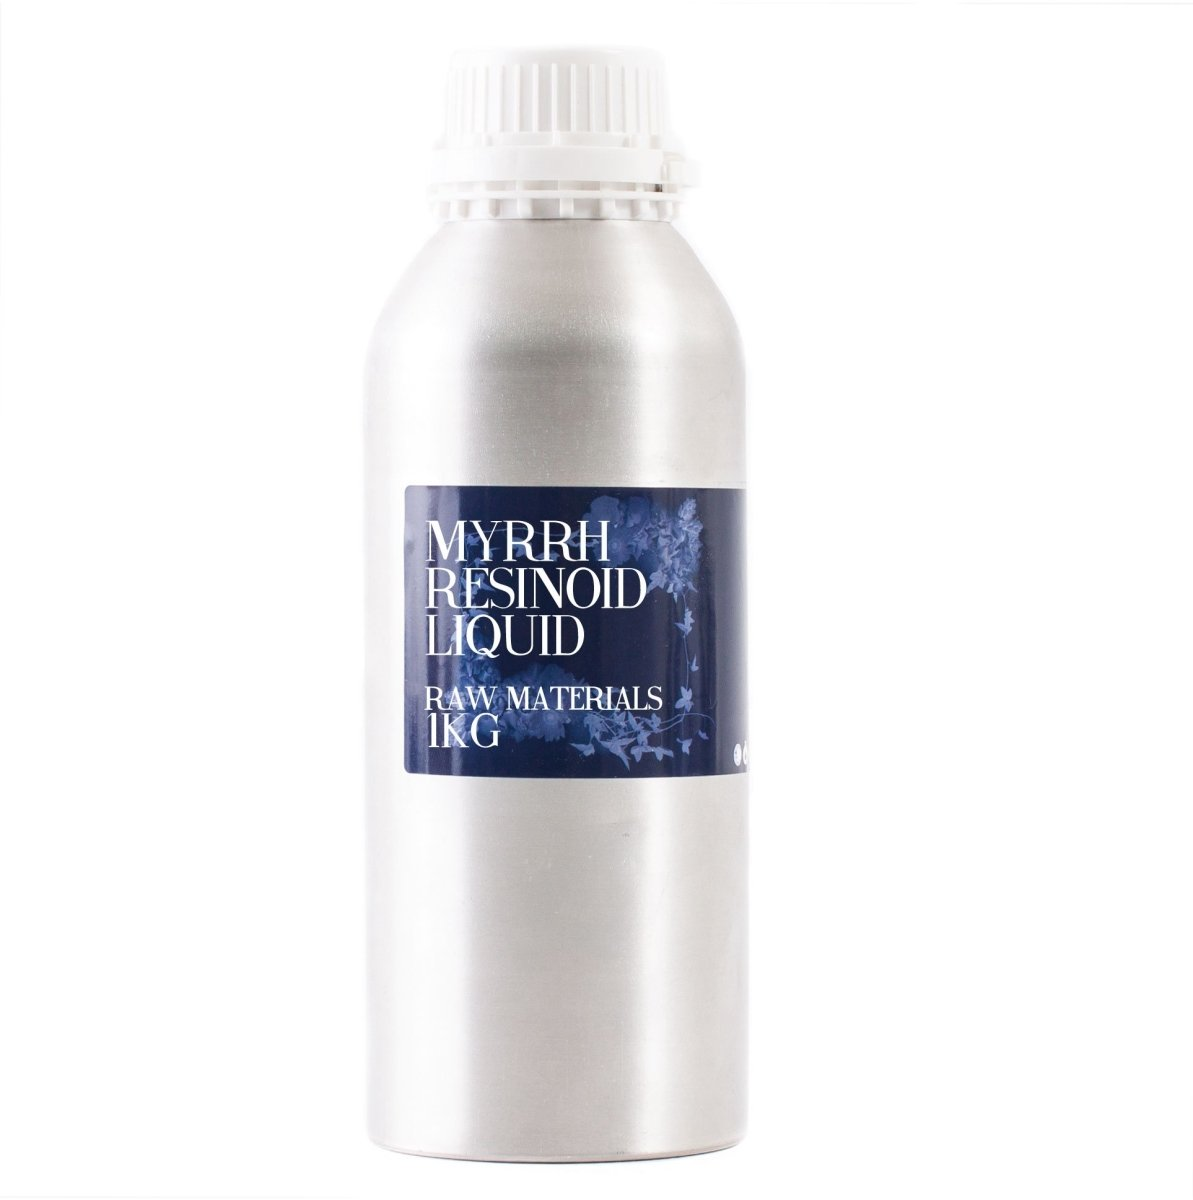 Myrrh Resinoid Liquid - Mystic Moments UK